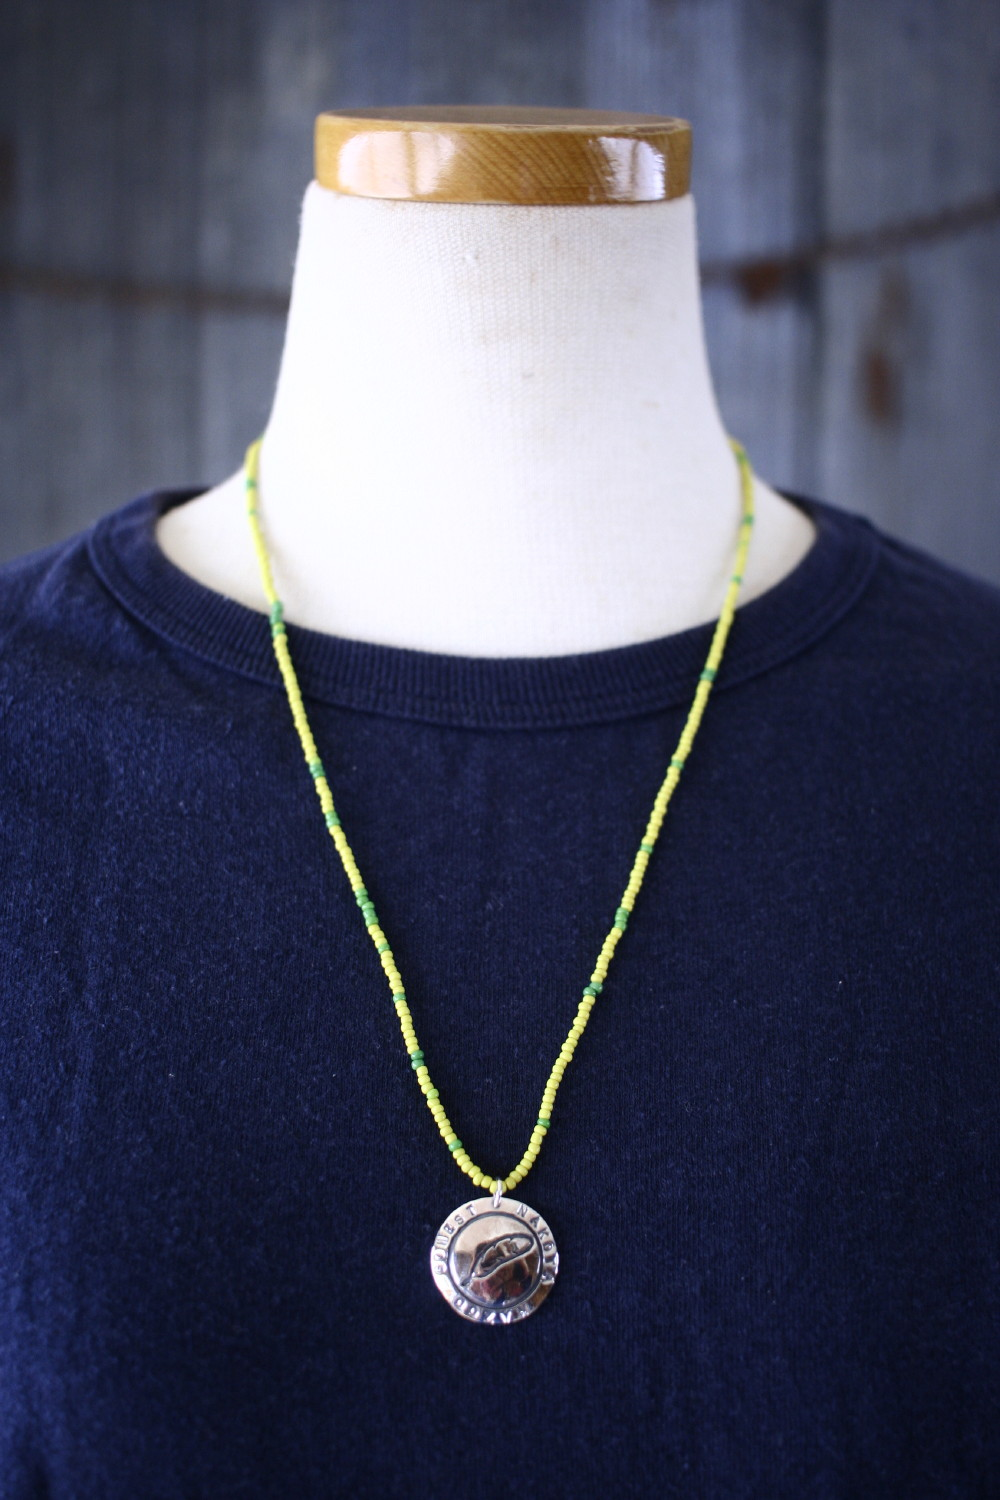 2waynecklace  ネックレス